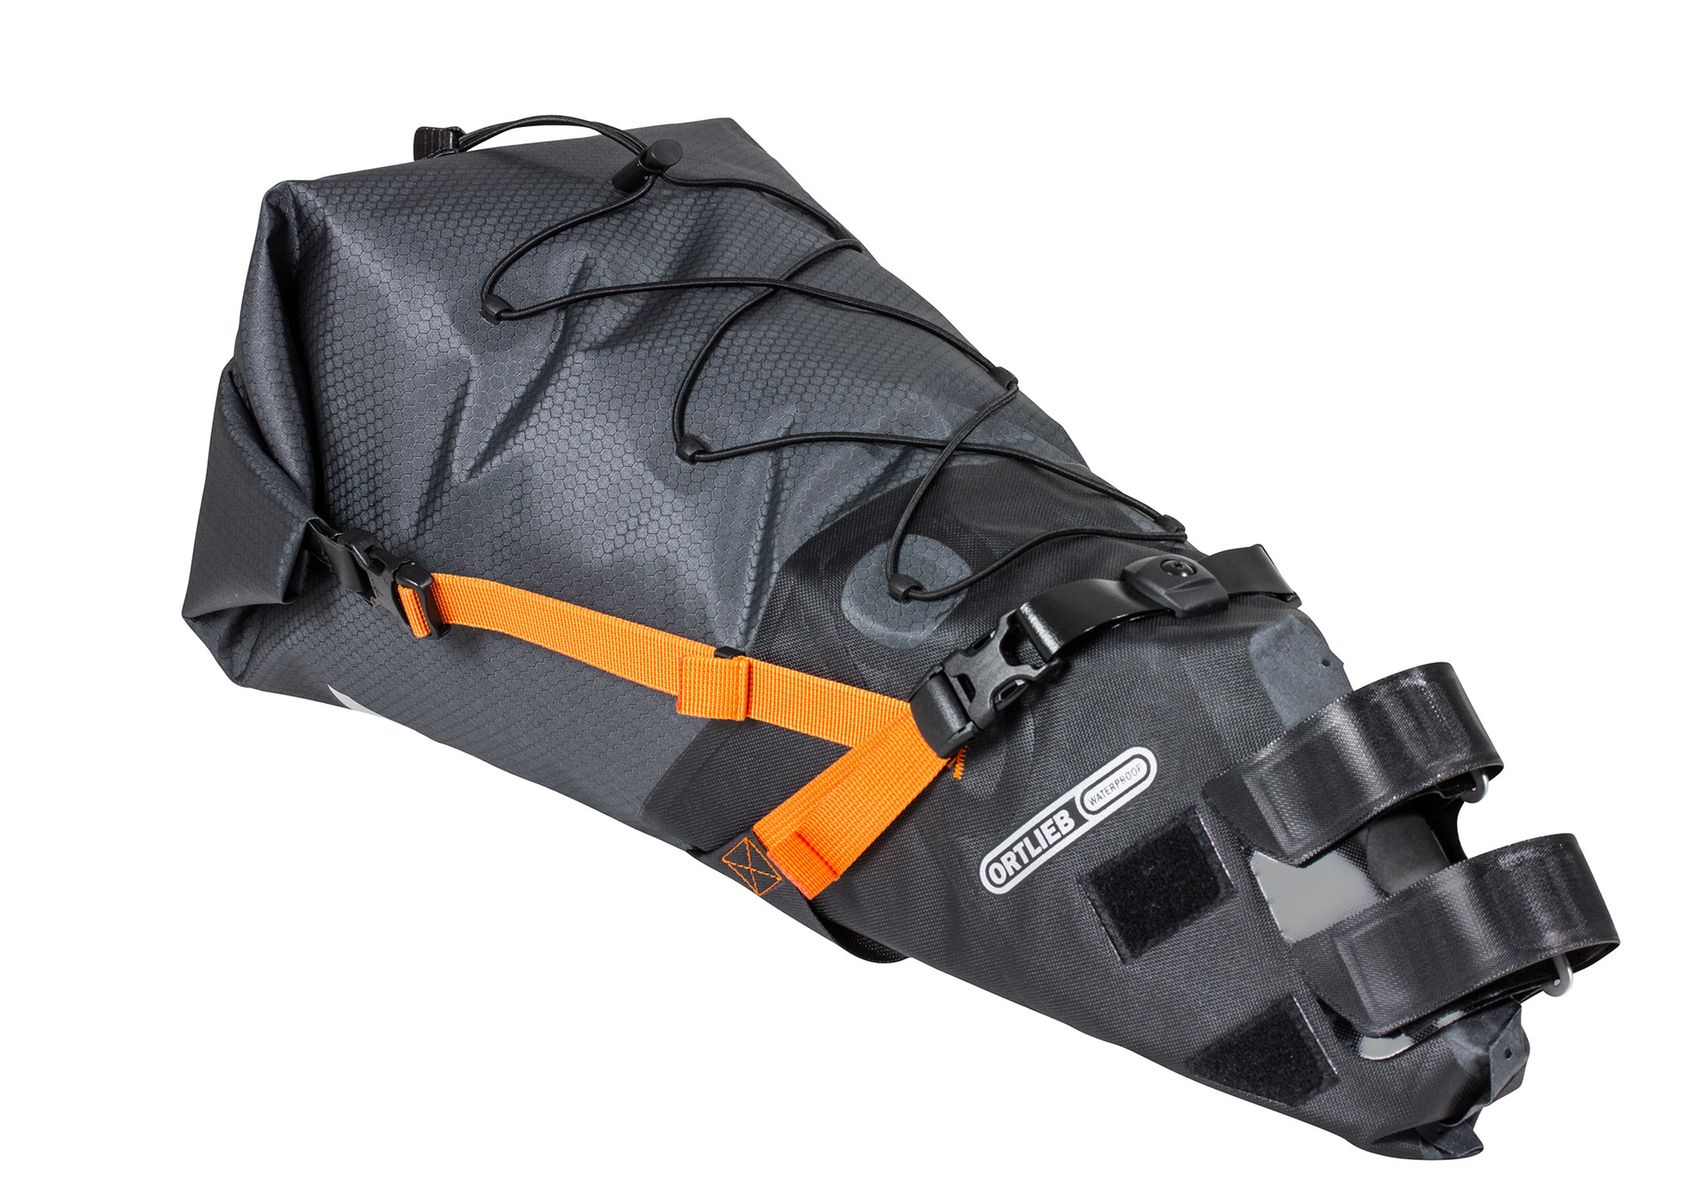 ORTLIEB BIKE PACKING SEAT-PACK L saddle bag | Saddle bags